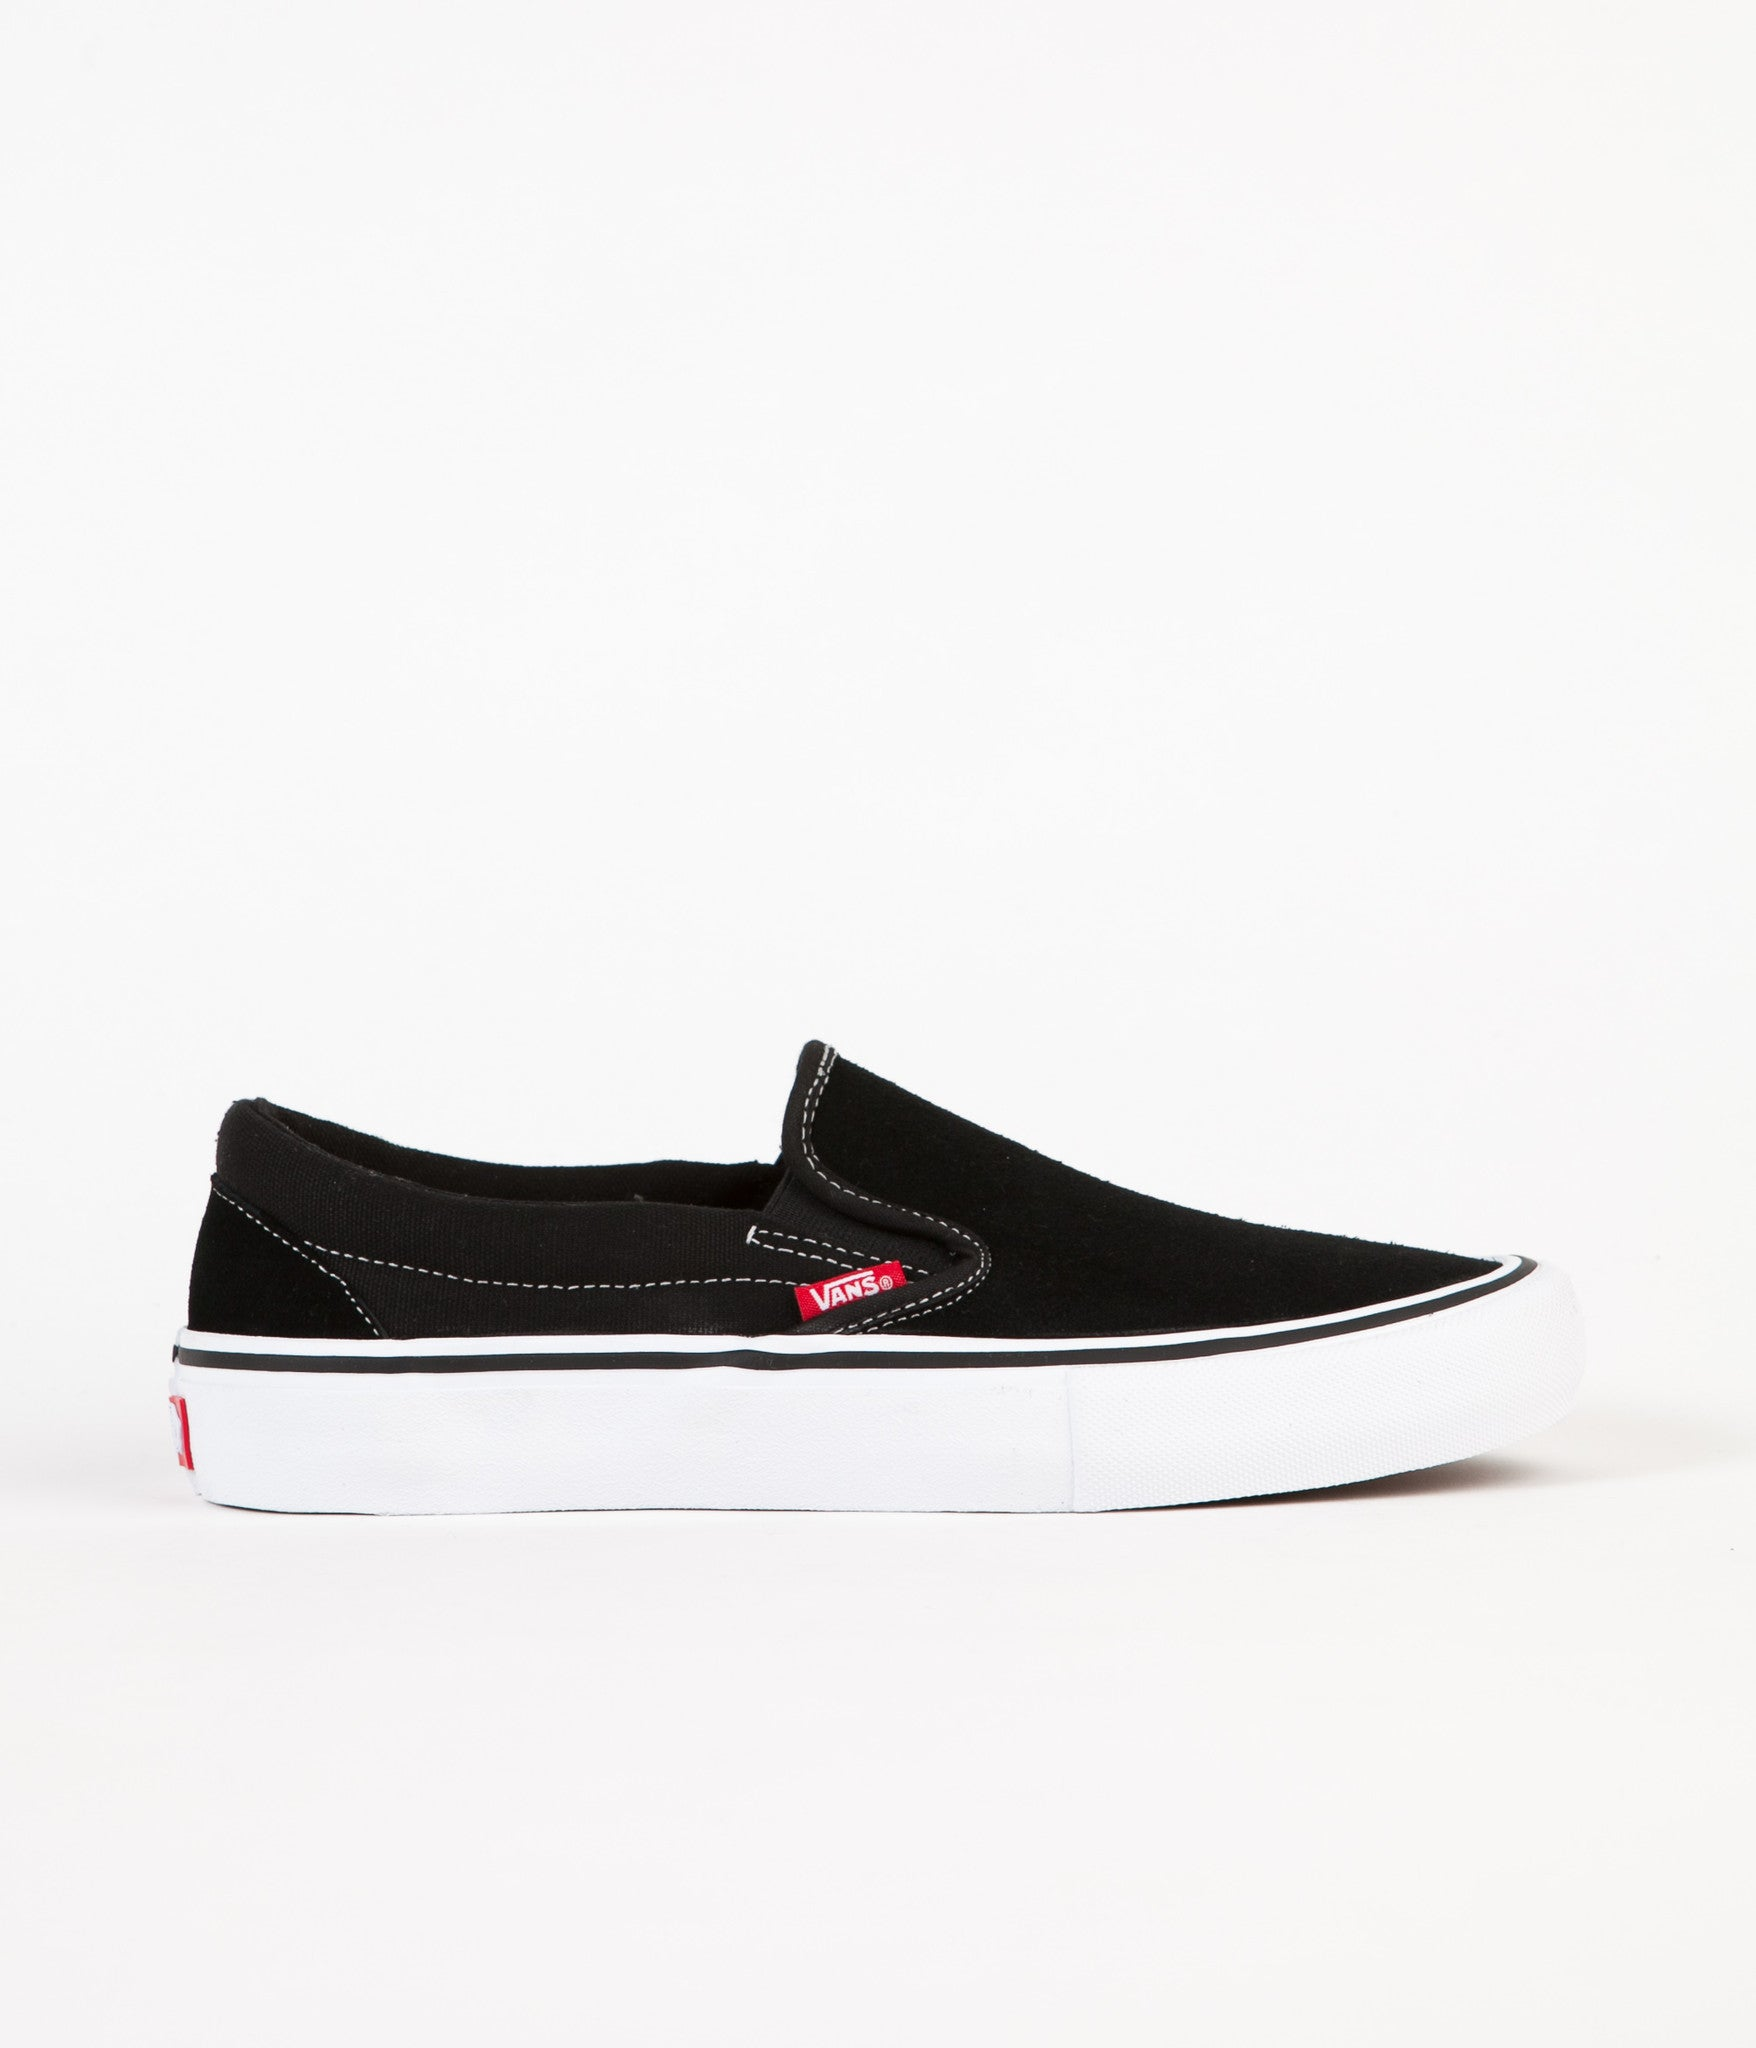 Vans Slip On Pro Shoes - Black / White / Gum